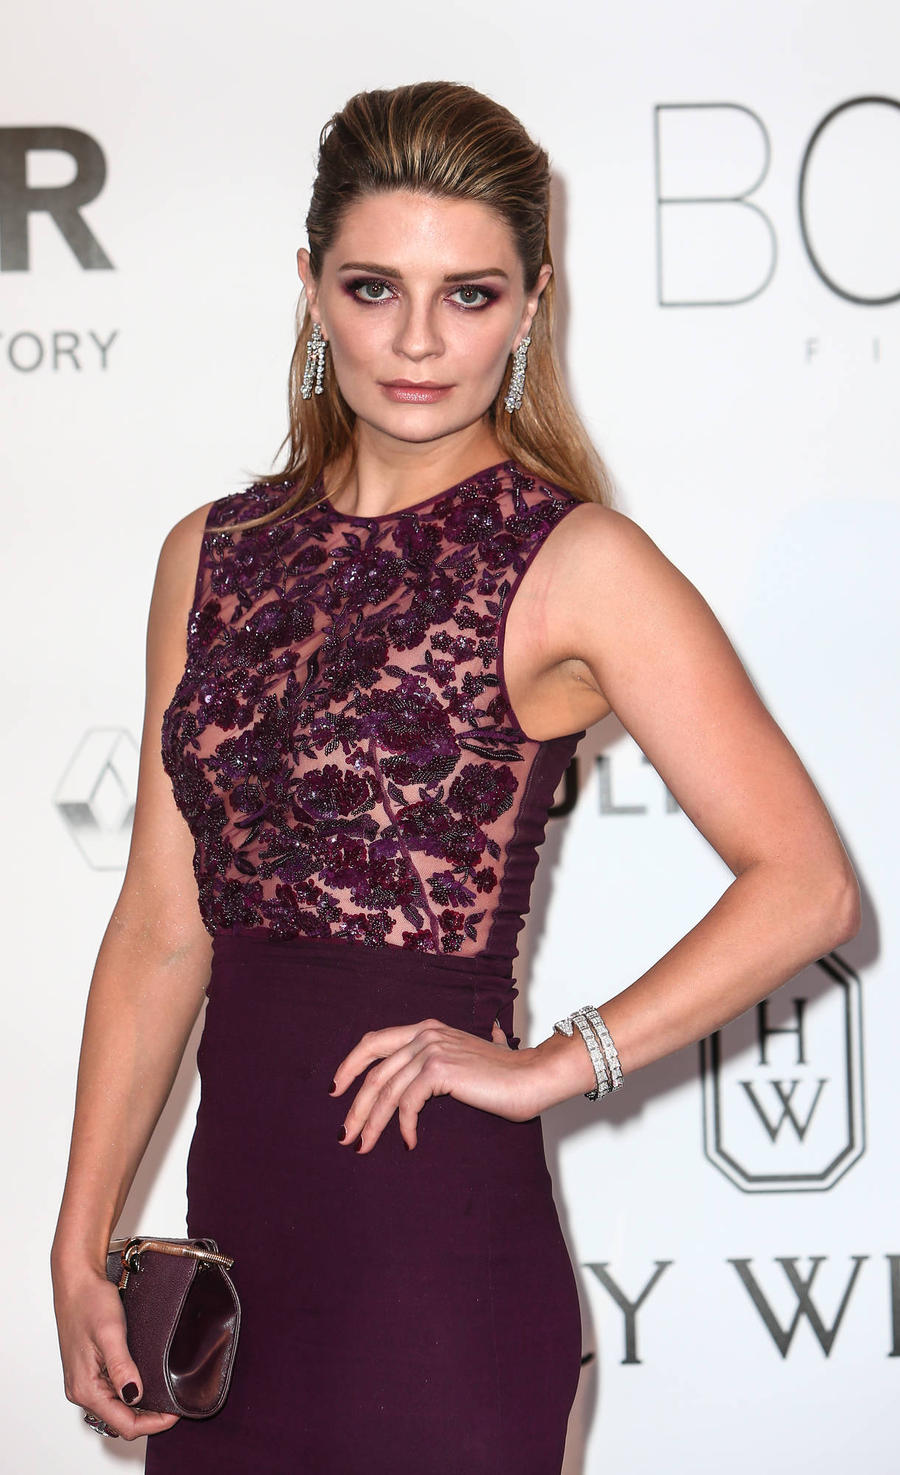 Mischa Barton Ordered To Pay $200k Over Missed Movie Role